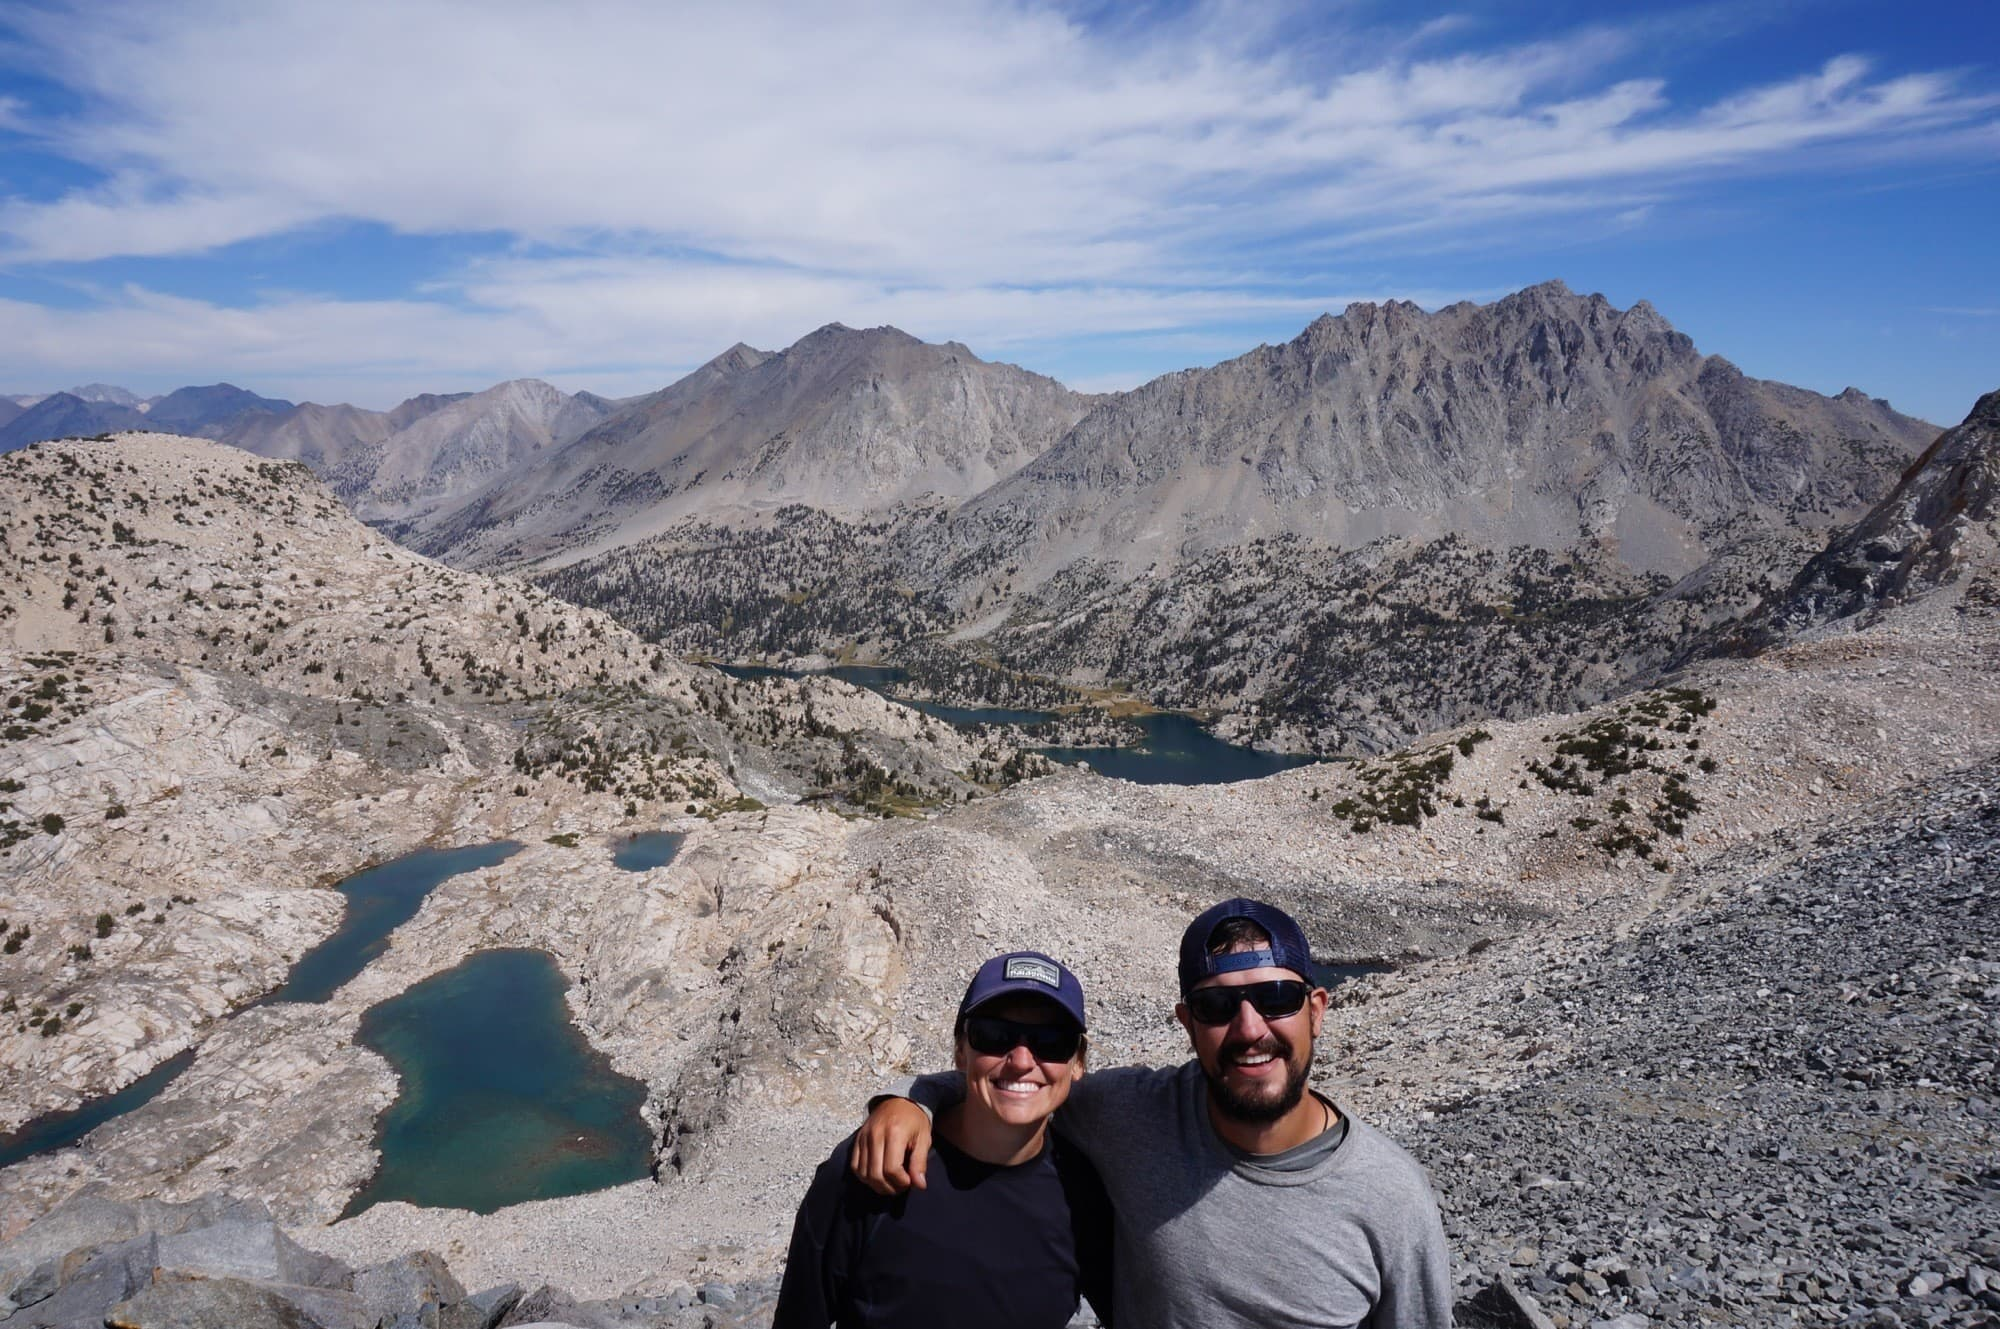 Glenn Pass / The best section hikes on the John Muir Trail that require less than a week to complete. Our detailed guide helps you plan permits, transportation and more!